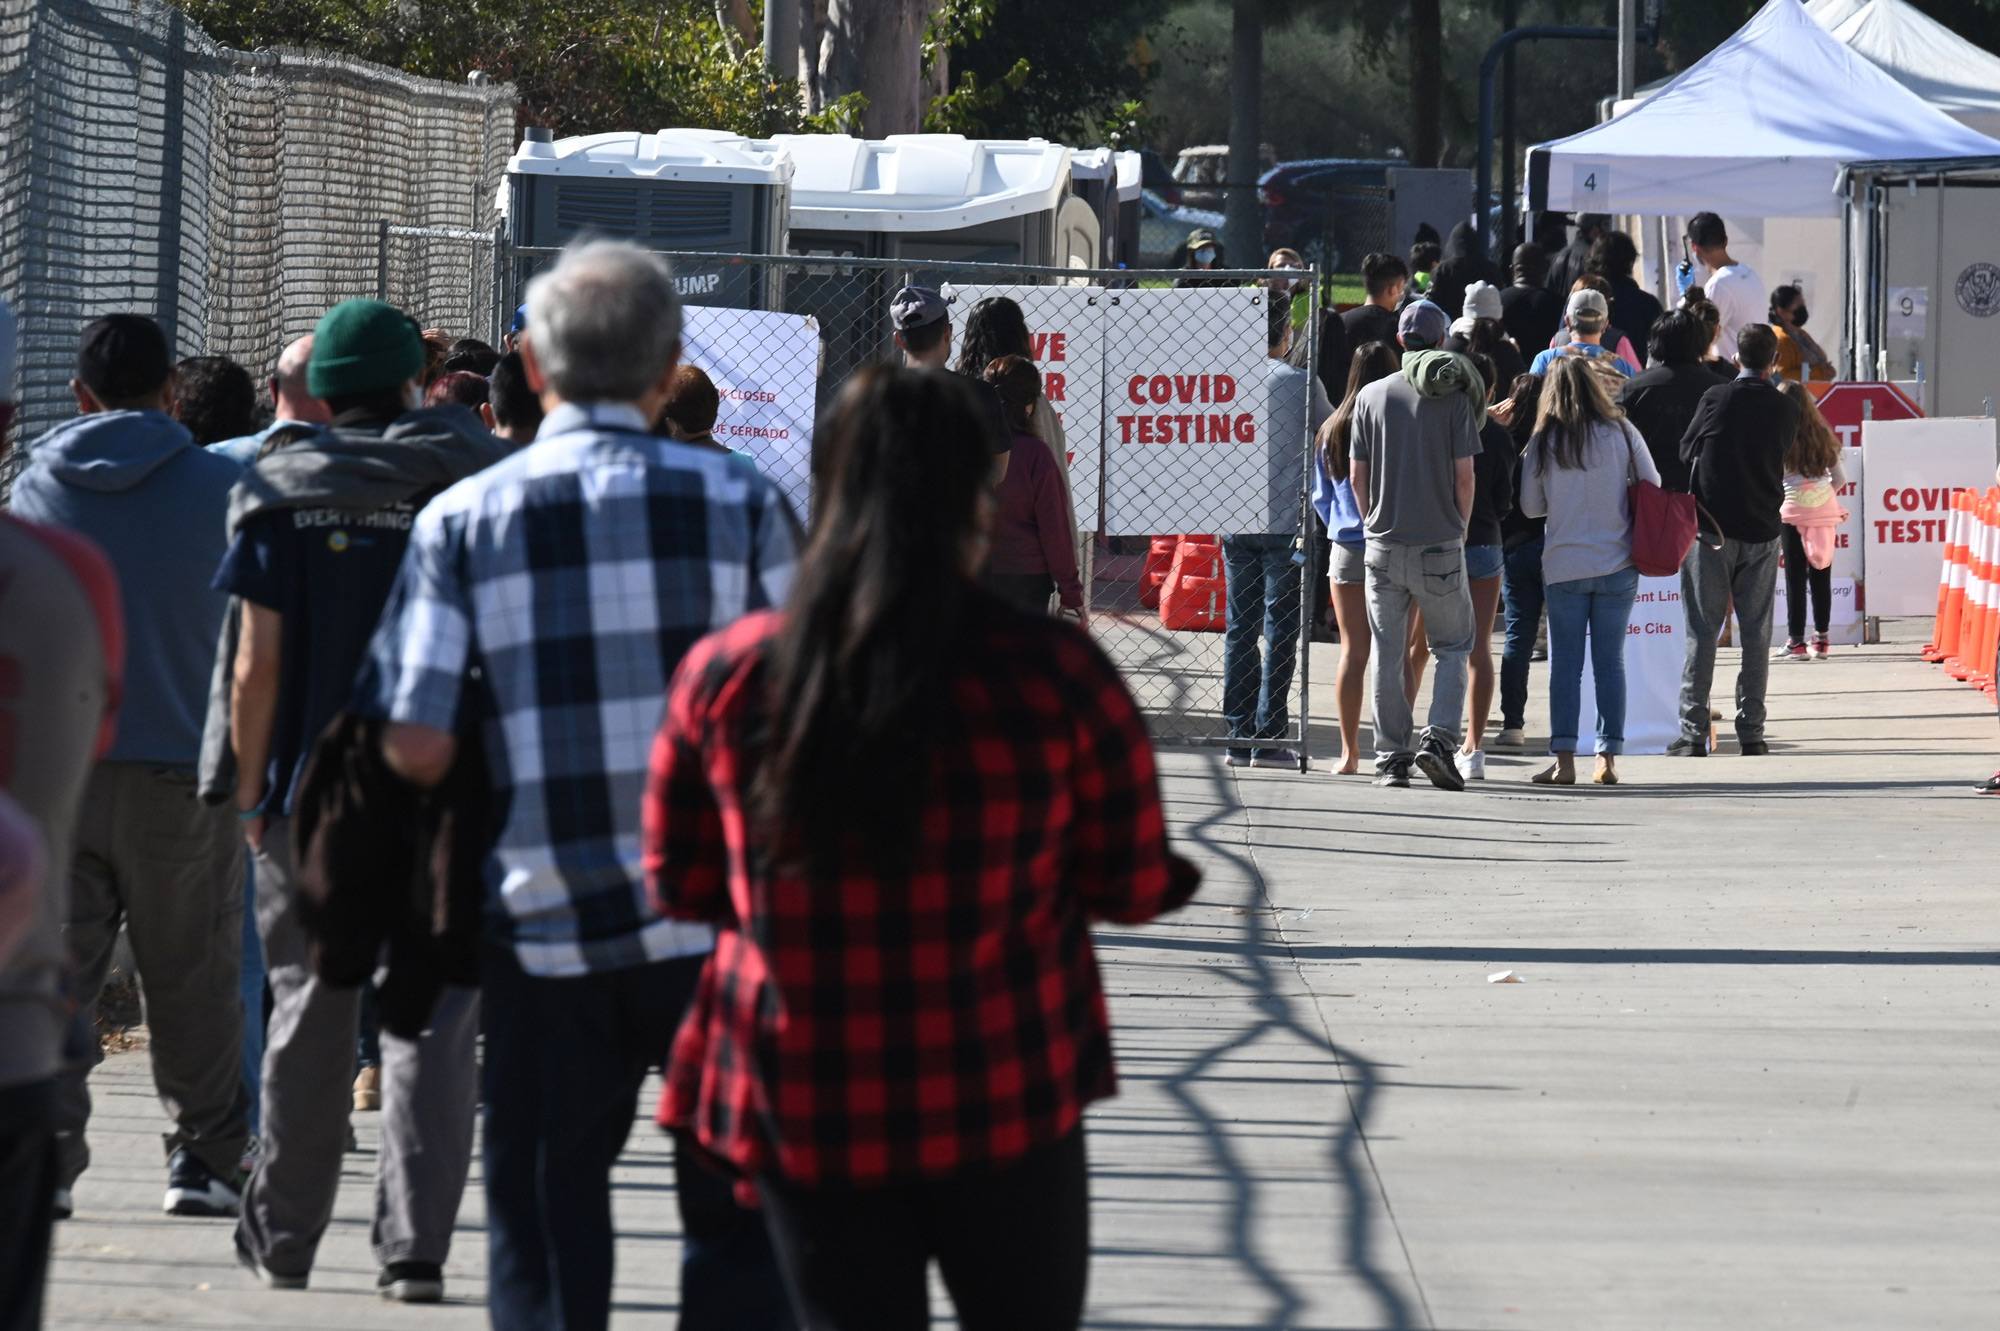 People wait in lines for coronavius tests at a walk-up Covid-19 testing site on November 24 in San Fernando, California.